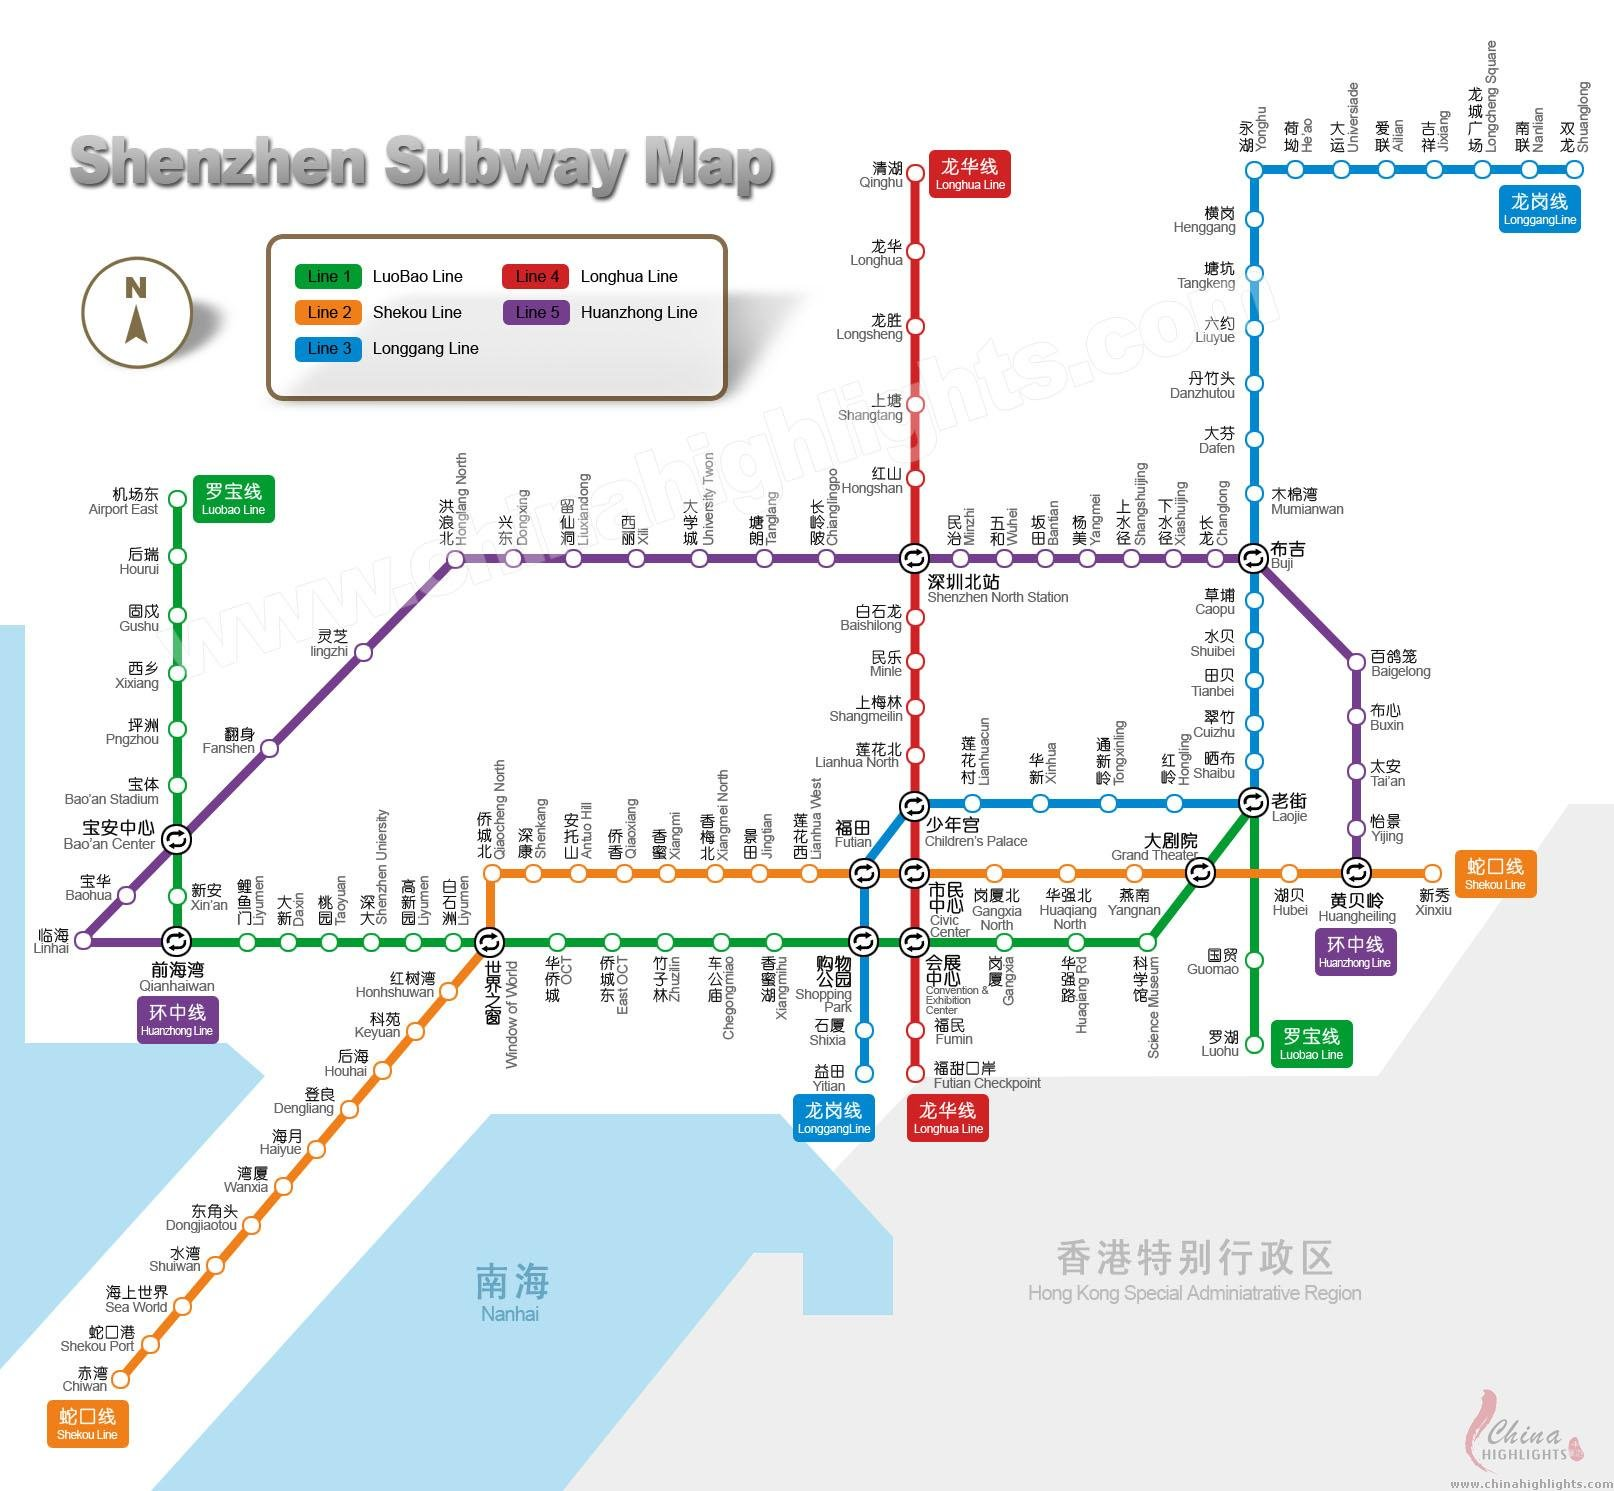 shenzhen railway station – all you need to know to use it - for other bullet train lines that go across the country you could accessfour other bullet train stations via the city metro